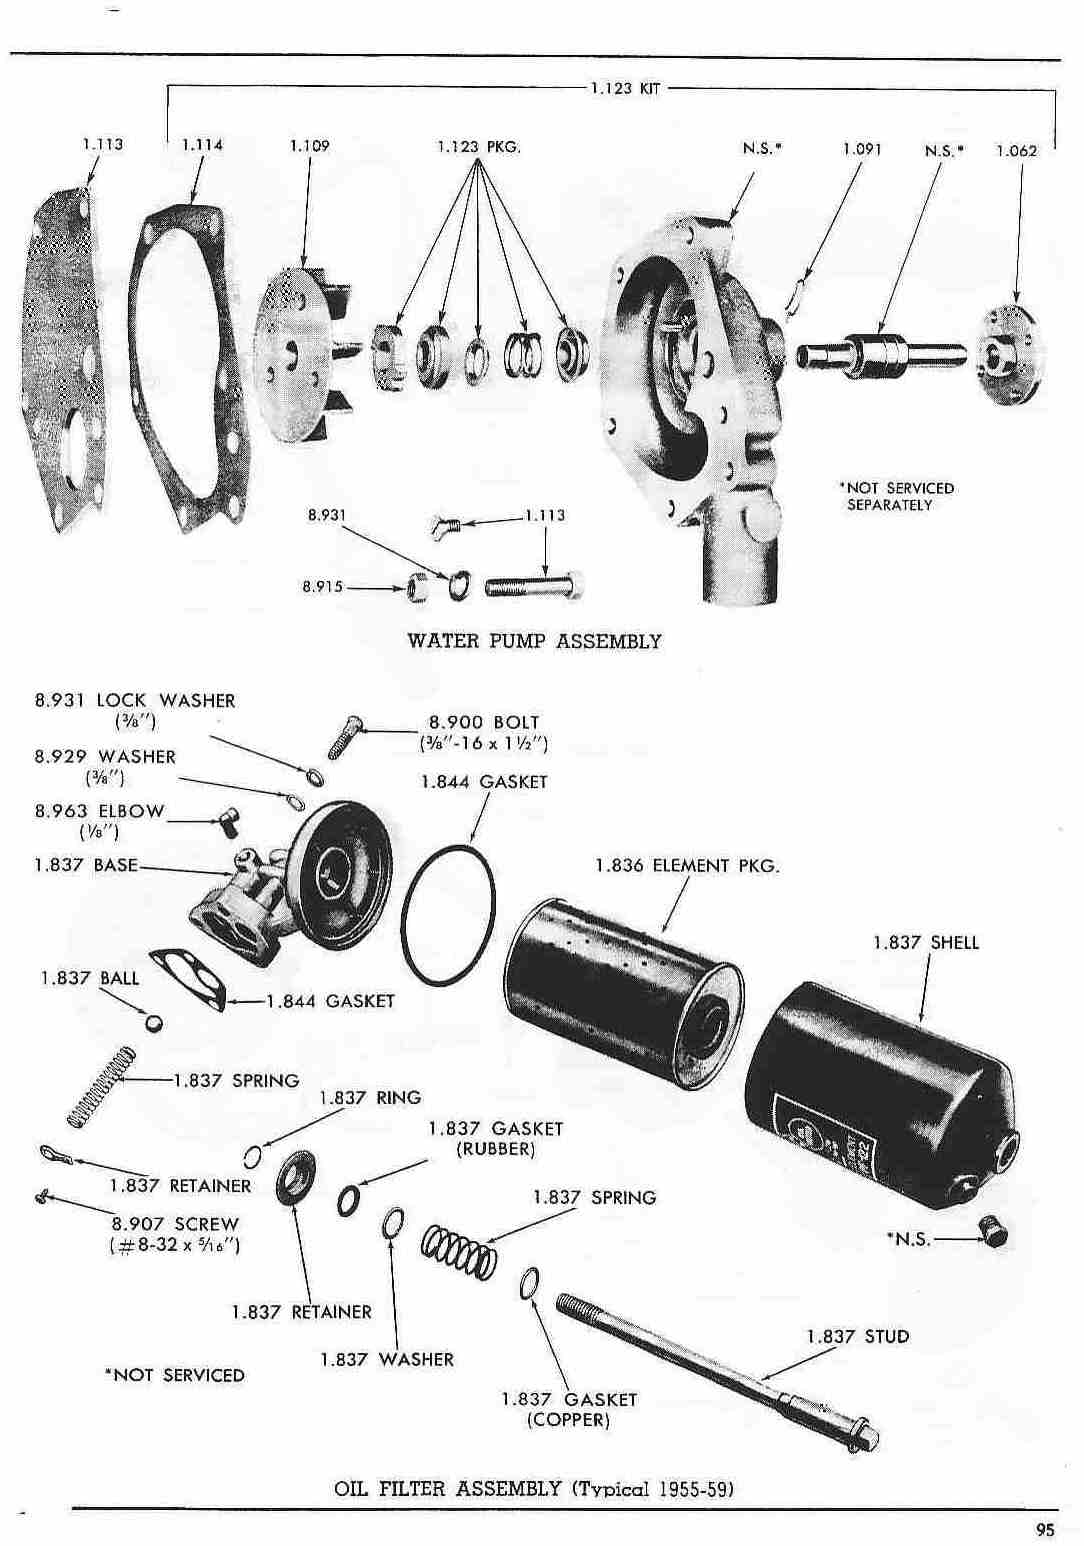 Pontiac 1960 Master Parts Catalog Starting Circuit Diagram For The 1955 All Models 95 Water Pump Oil Filter Assembly 59